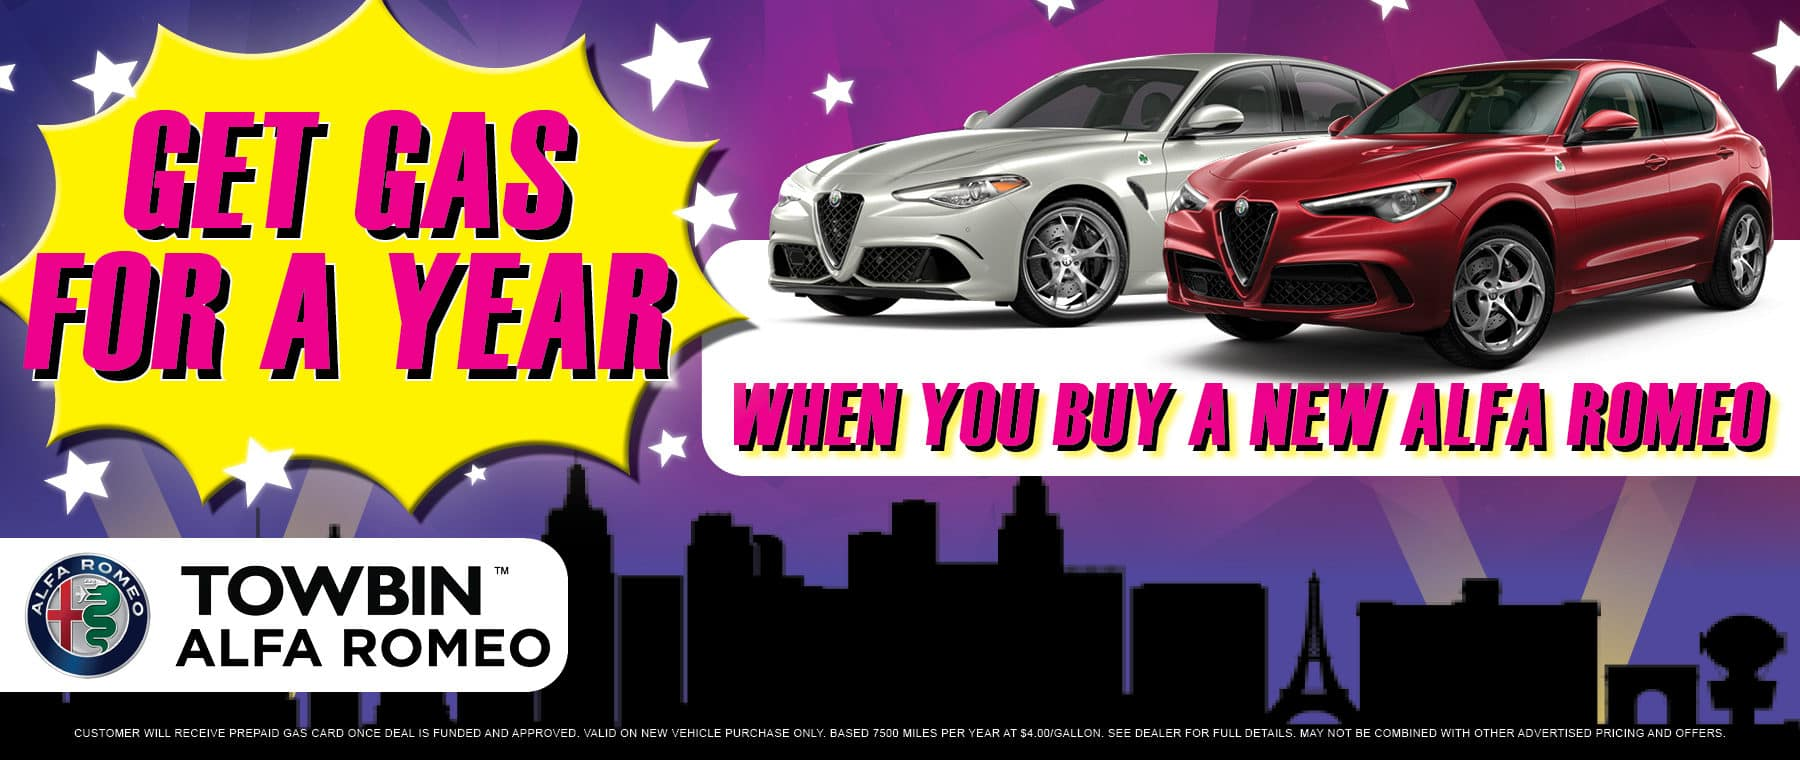 TAGA-0425-G-1800×760-ALFA GAS FOR A YEAR WEB BANNER-DT-V3